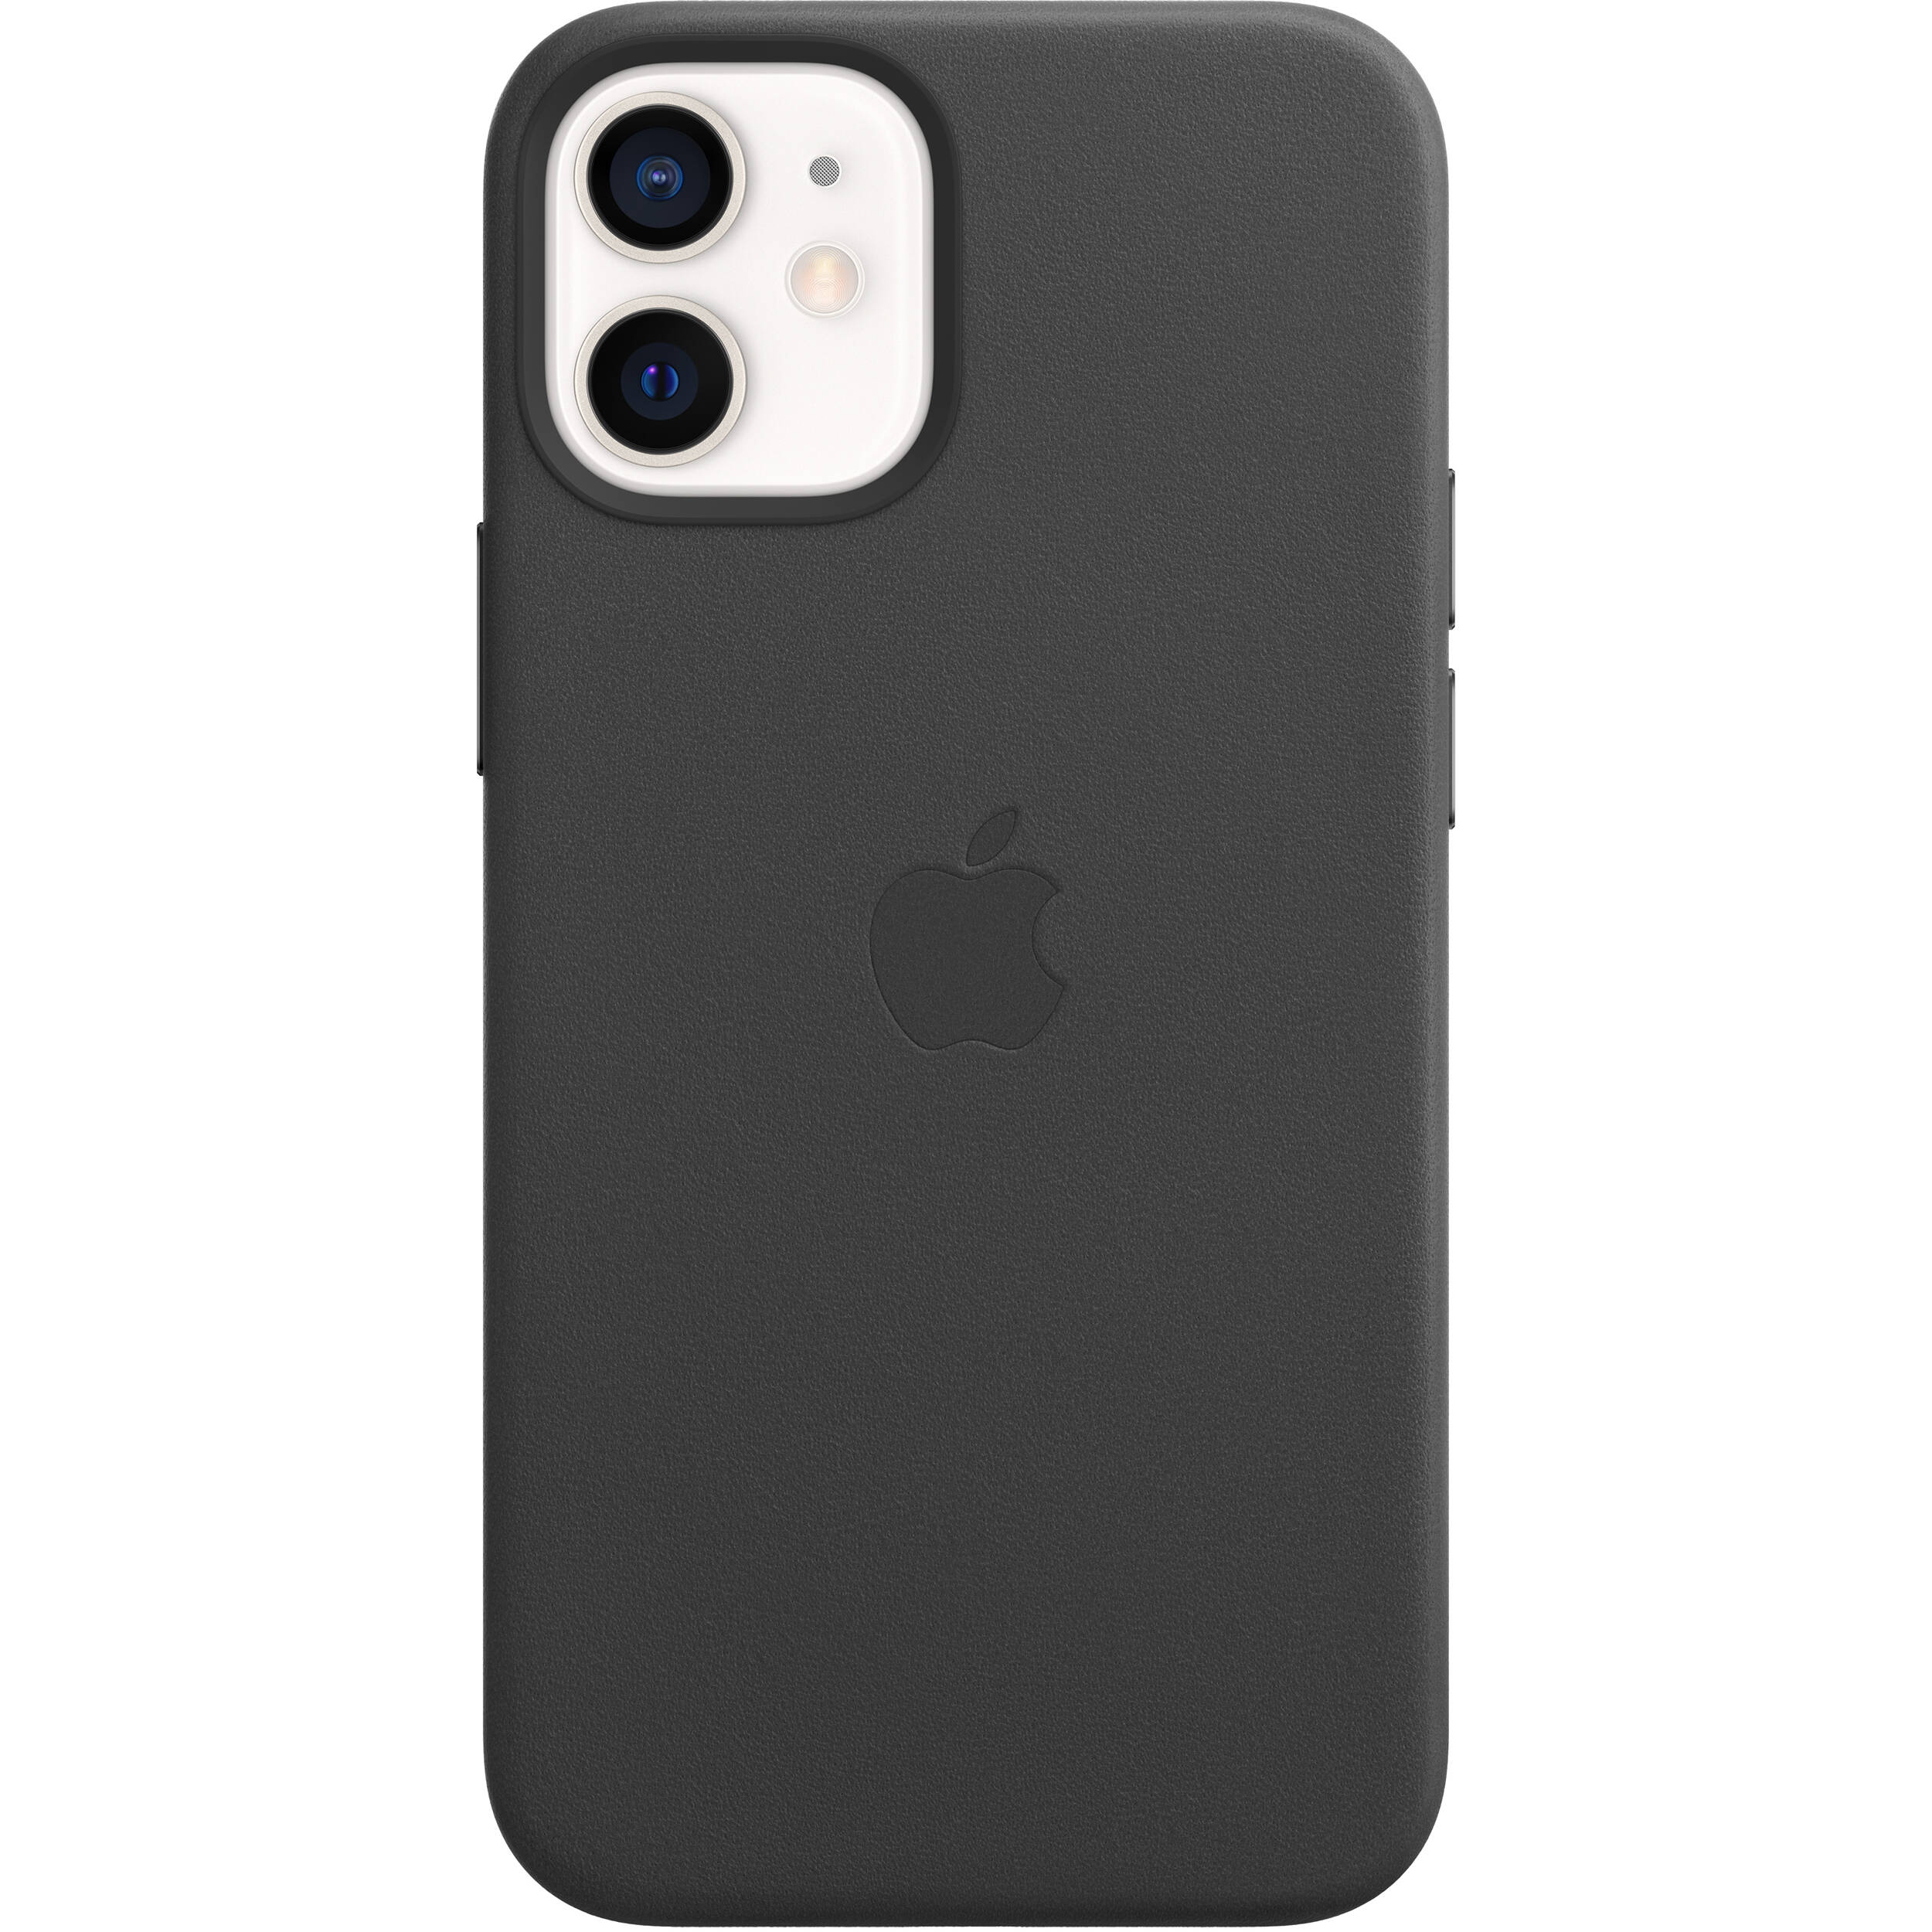 Apple iPhone 12 mini Leather Case with MagSafe (Black) MHKA3ZM\/A